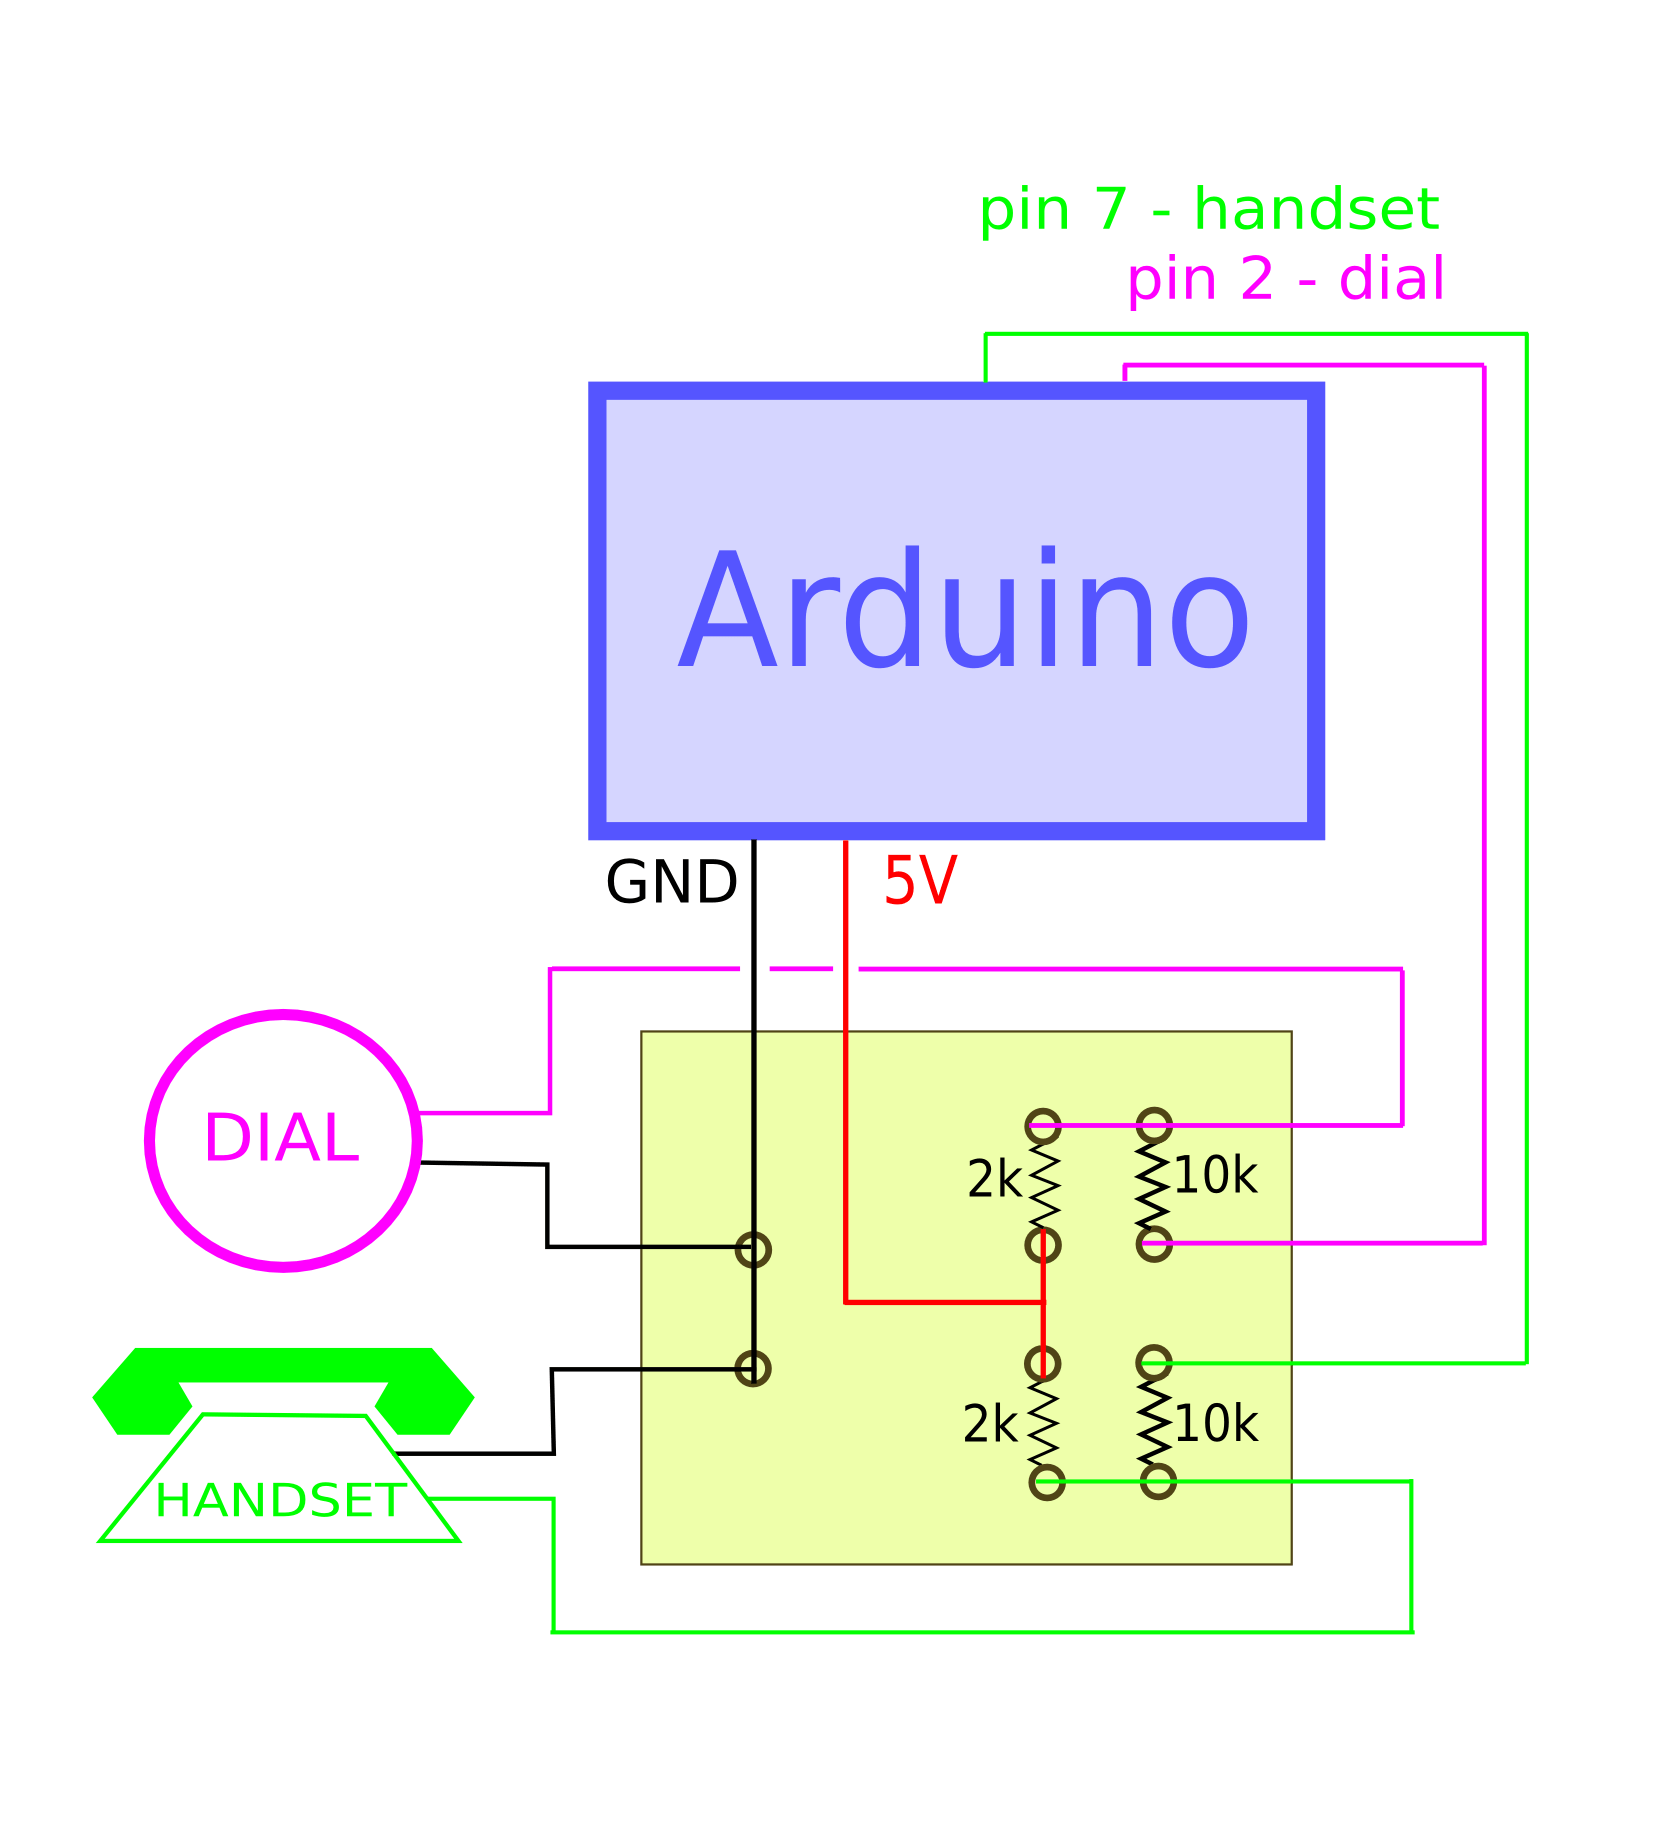 hight resolution of the idea behind this circuit is to connect the input wires let s say of the handset to the 5 volts pin if the two wires are not touching the current flows